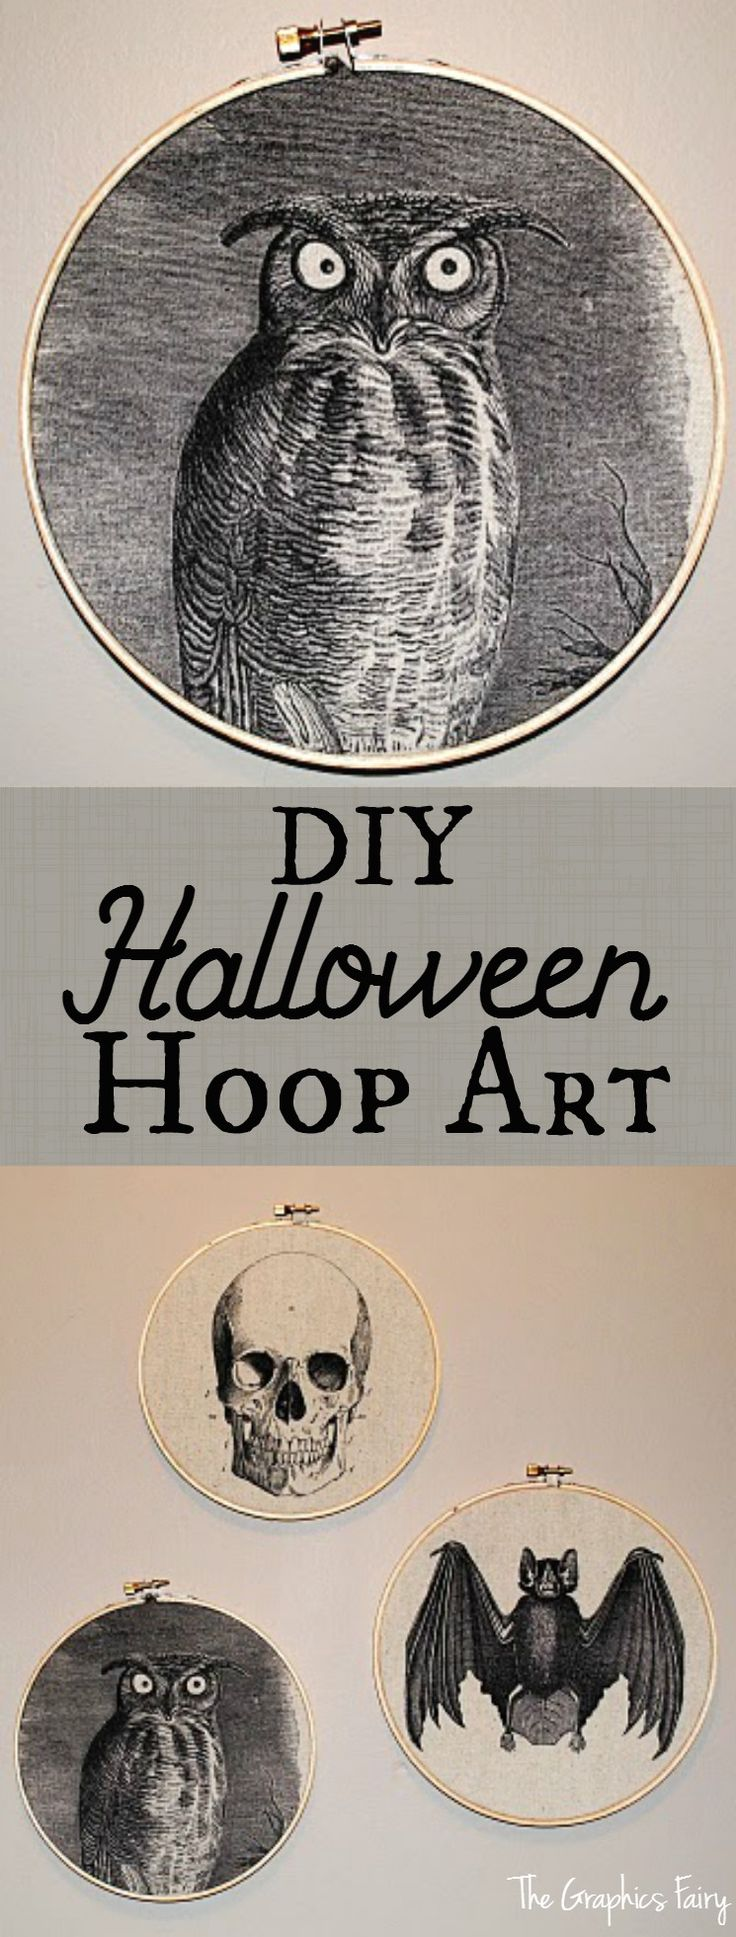 Vintage halloween window decorations - Craft Project Vintage Halloween Hoop Fabric Art Tutorial Fun And Easy Diy Wall Decor